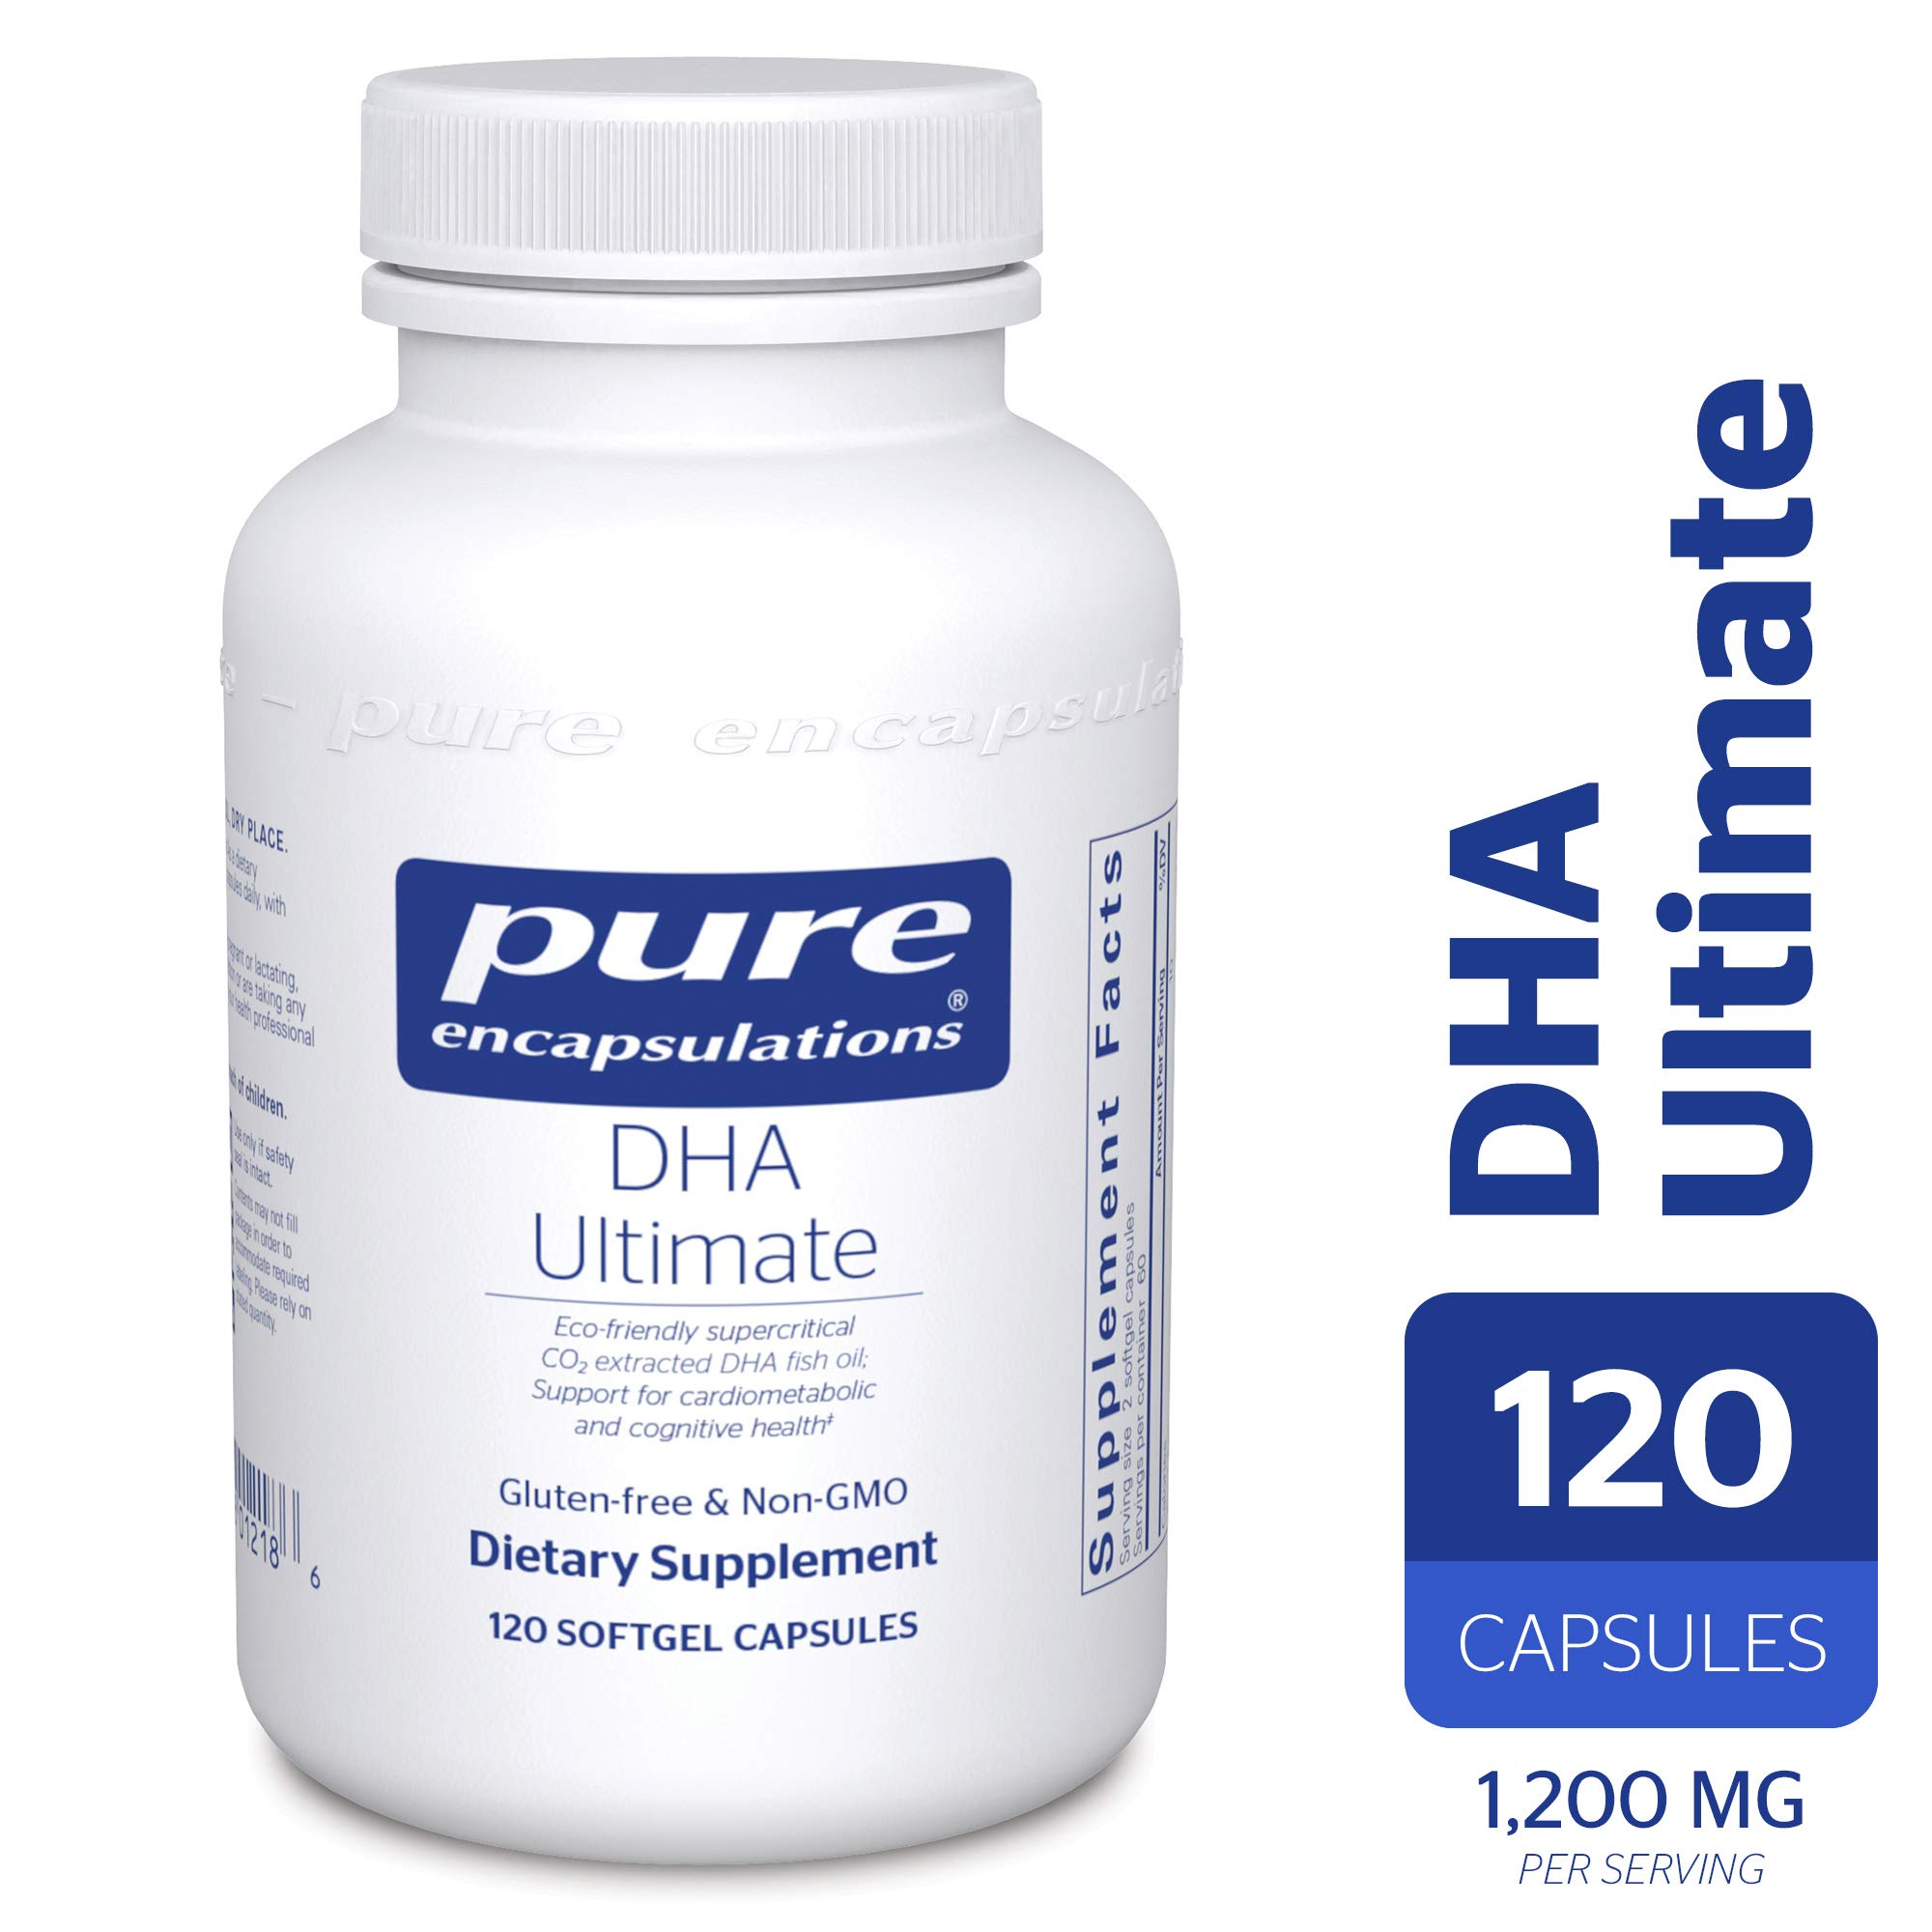 Pure Encapsulations - DHA Ultimate - Eco-Friendly Supercritical CO2 Extracted DHA Fish Oil Concentrate - 120 Softgel Capsules by Pure Encapsulations